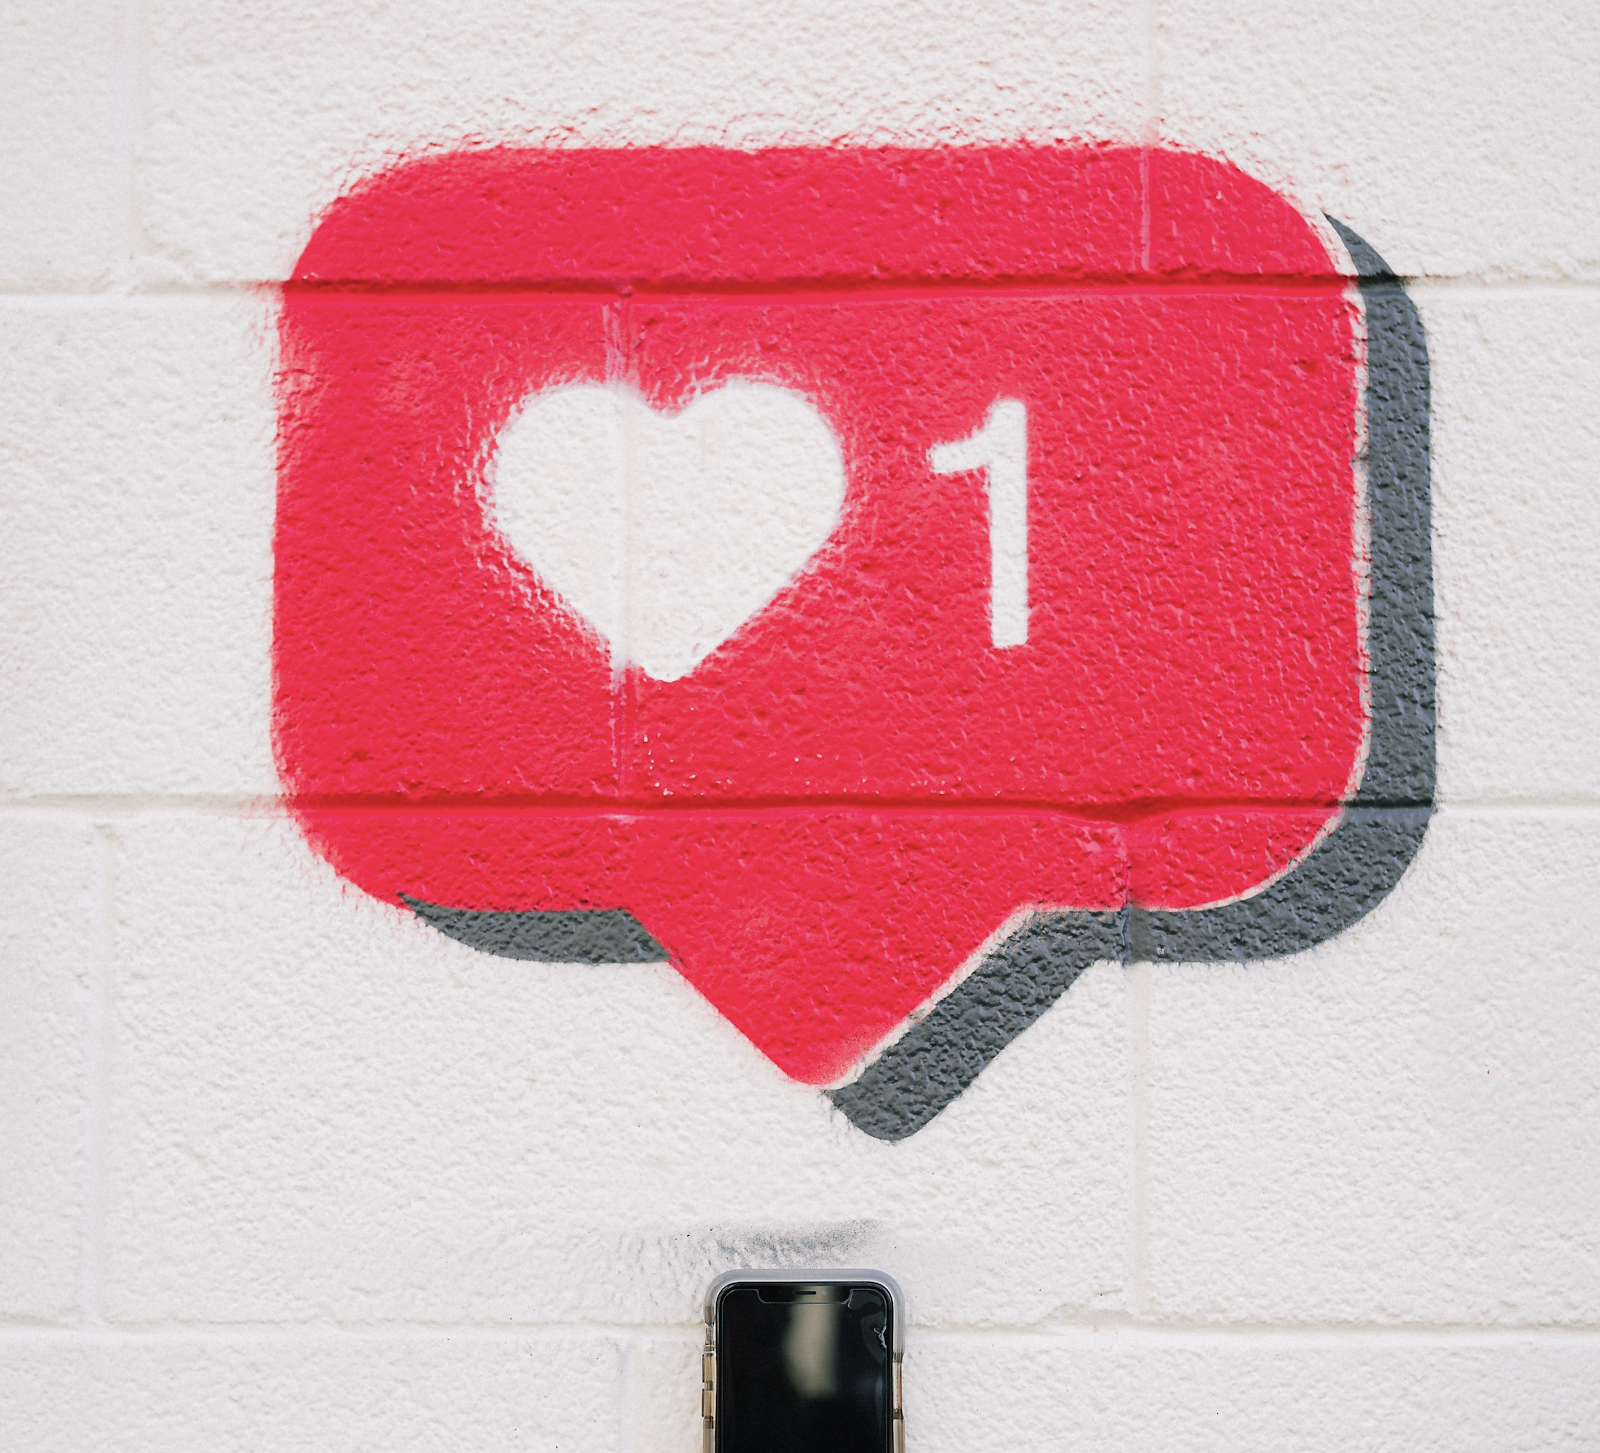 A speech bubble with a heart symbol and number 1 spray painted onto a wall above a cell phone